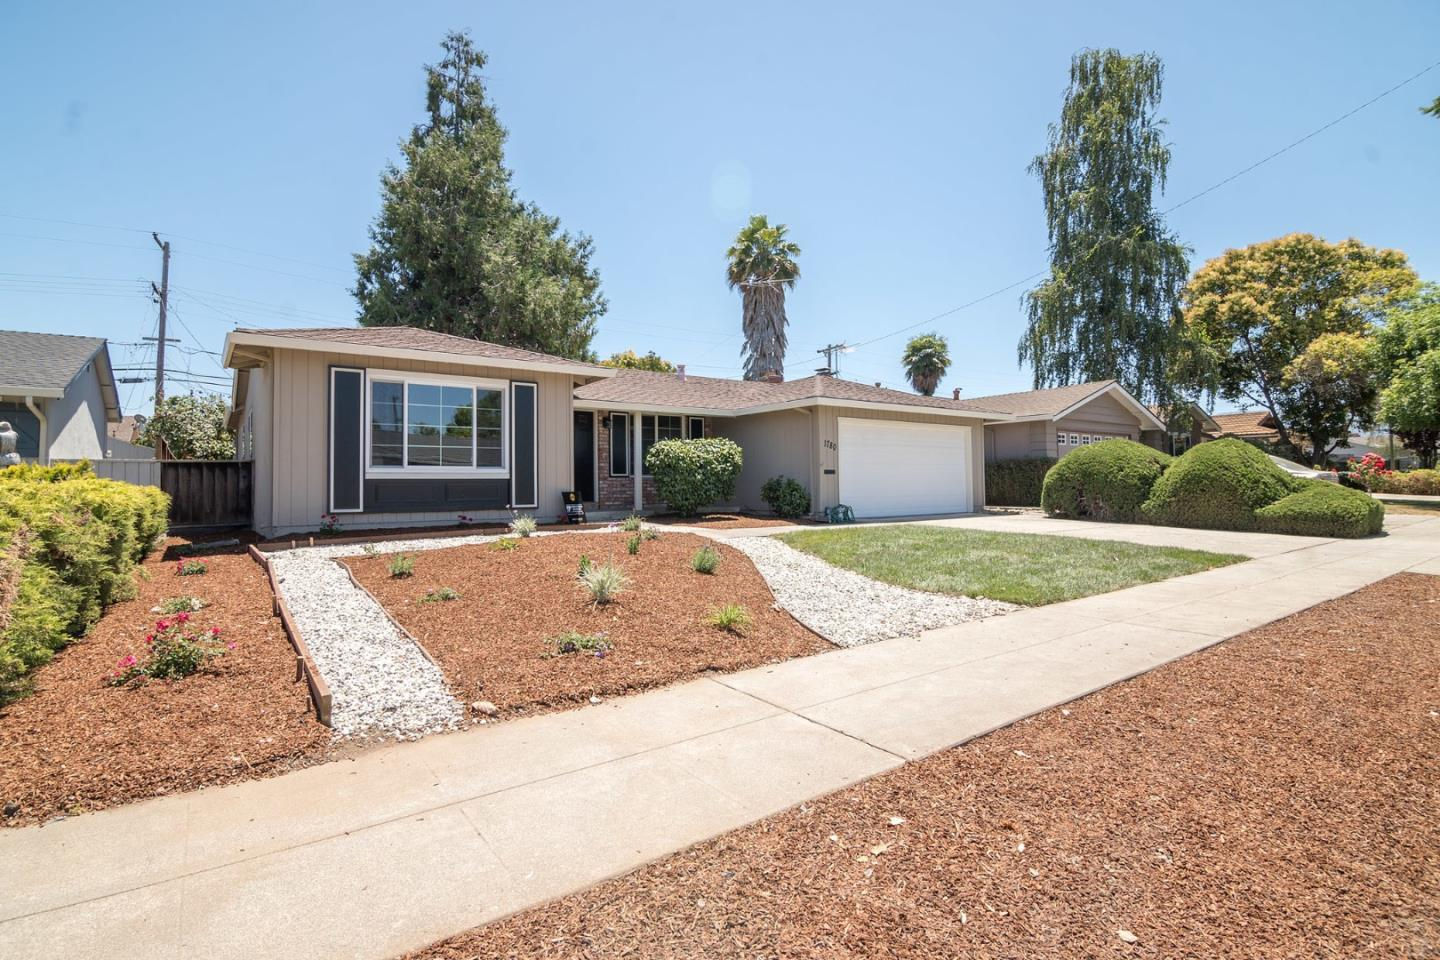 Additional photo for property listing at 1780 Castro Drive  San Jose, California 95130 United States